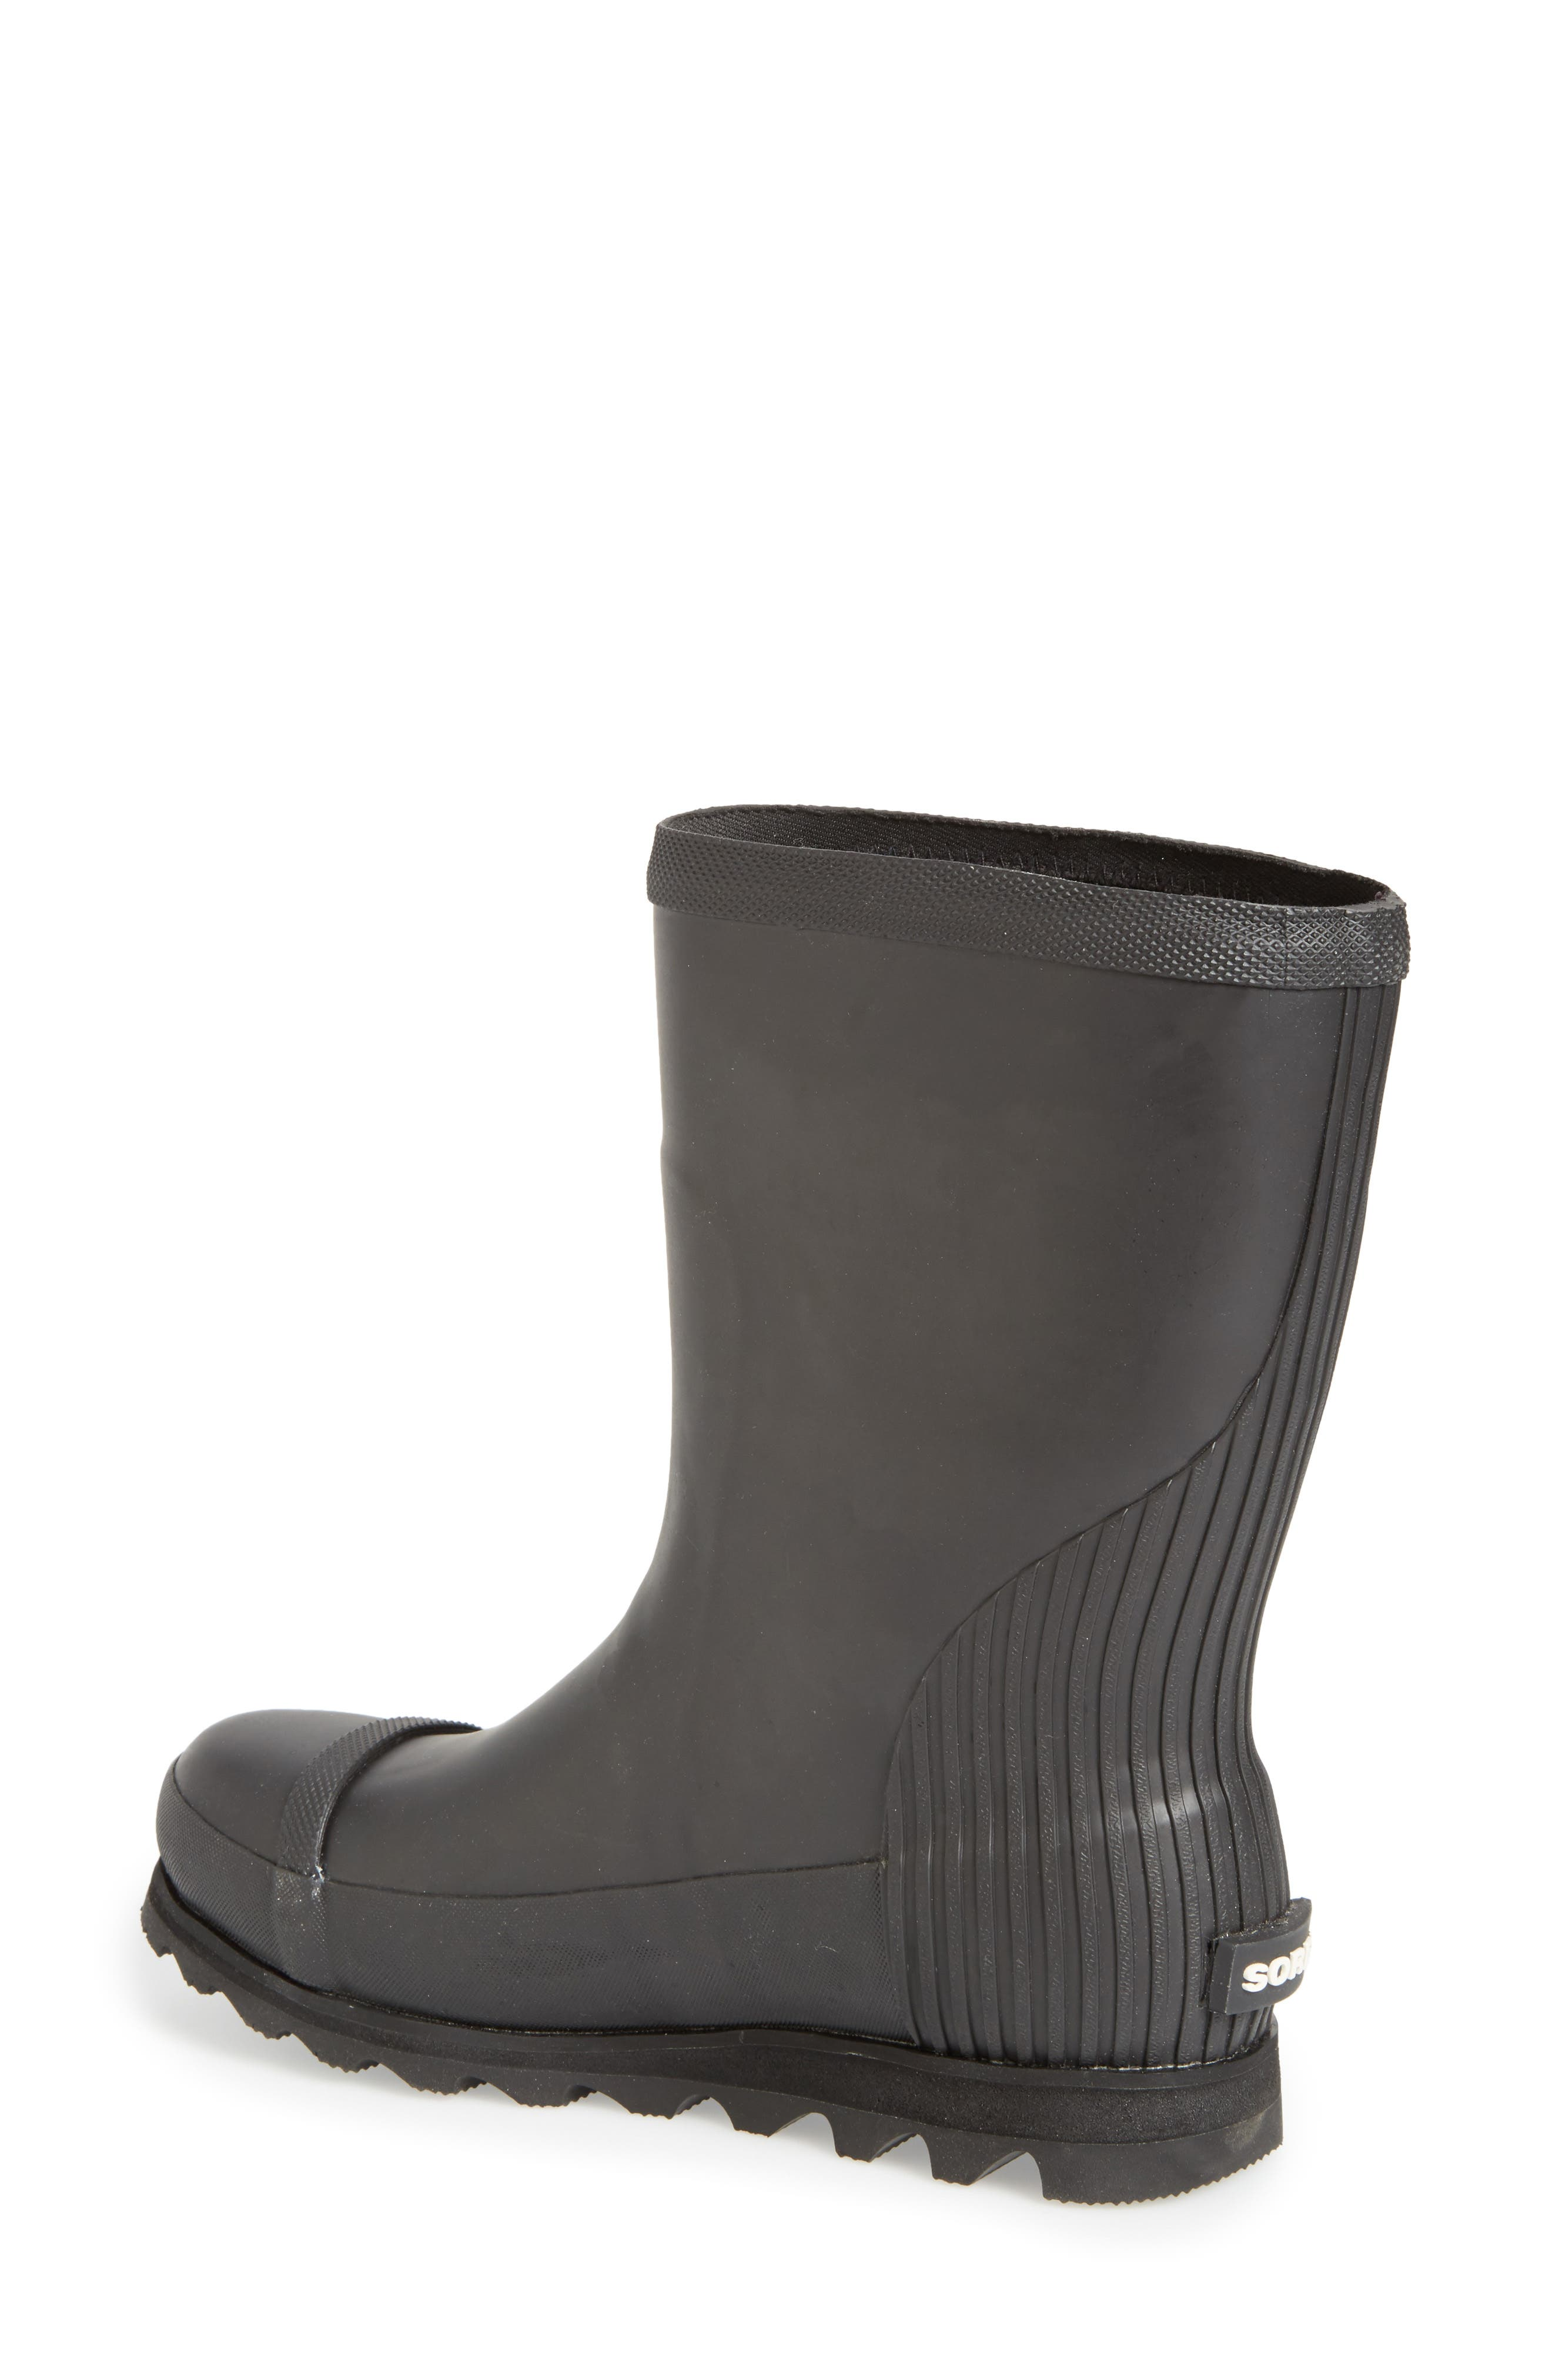 Joan Short Rain Boot,                             Alternate thumbnail 2, color,                             010